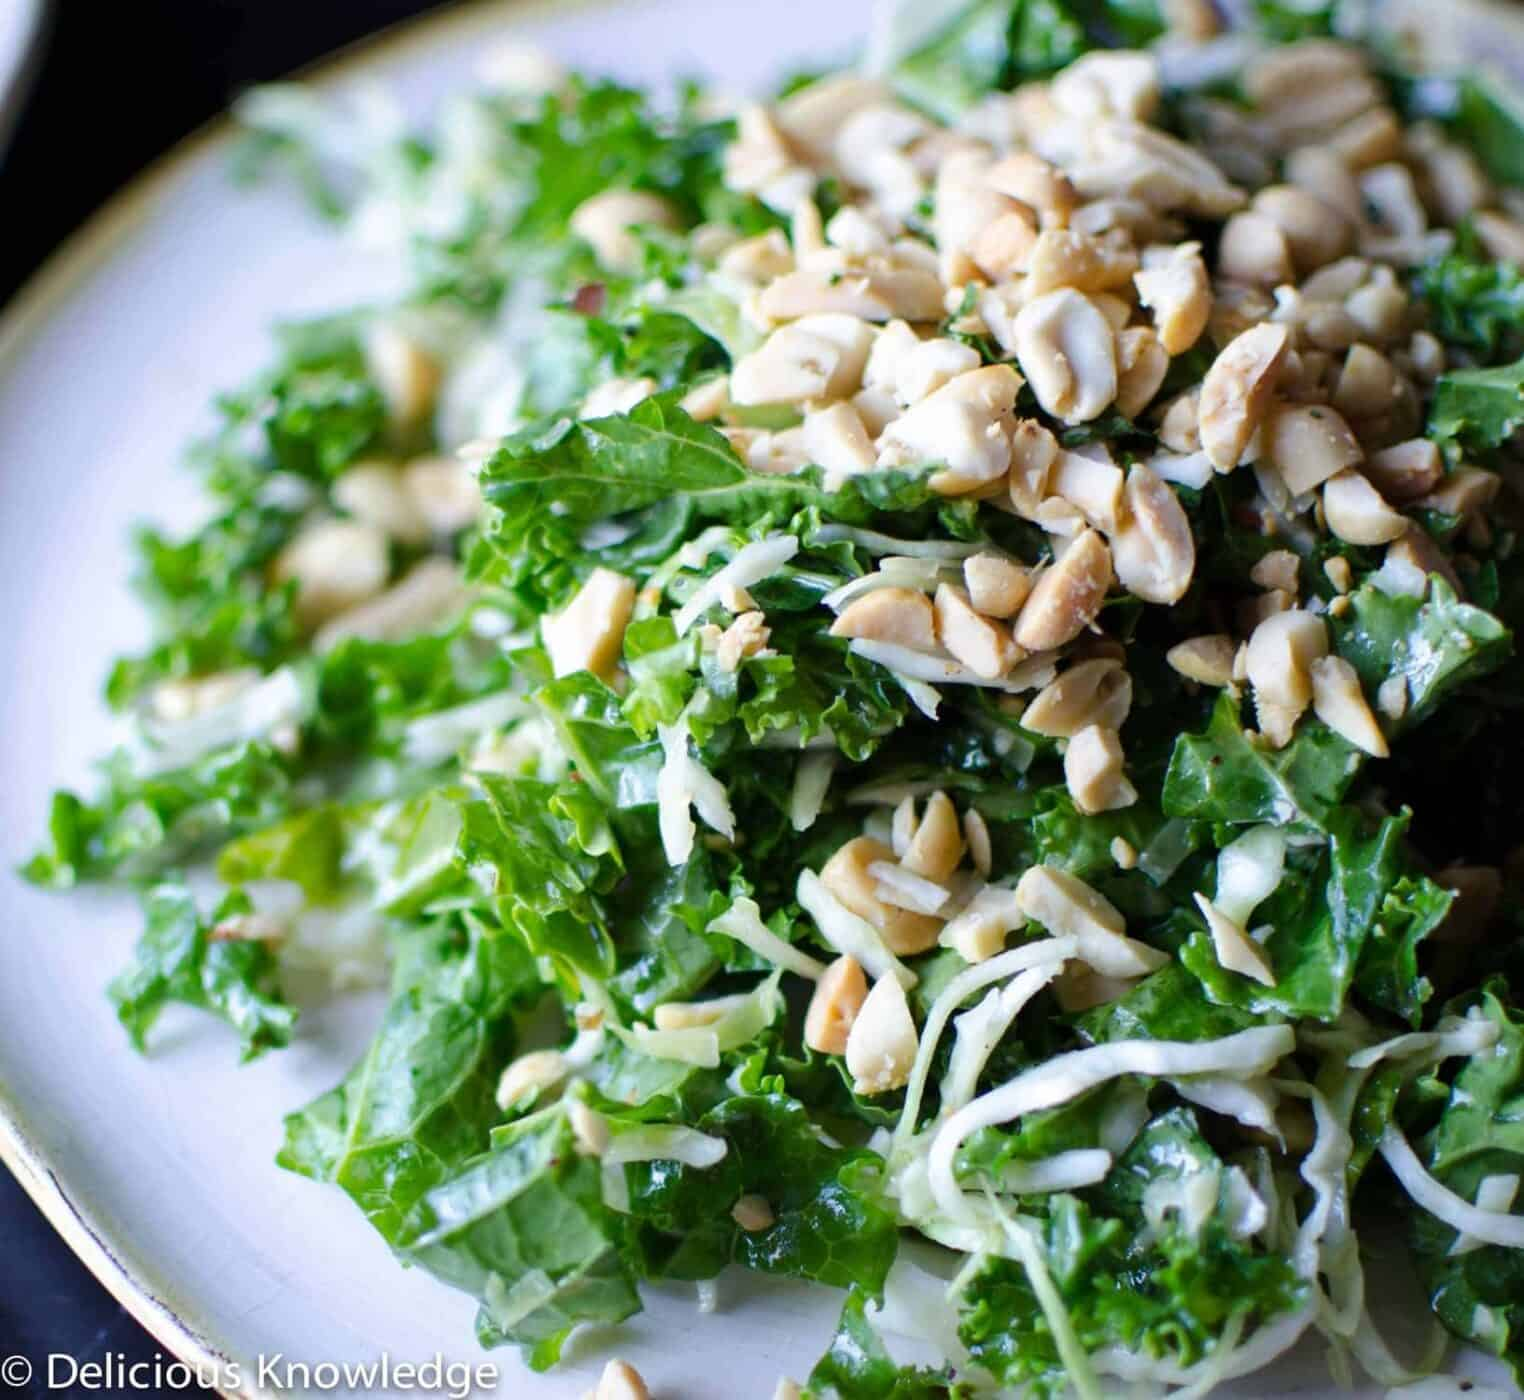 Roasted Peanut Kale Salad! A healthy, vegan and gluten free that mimics South Beverly Grill's version. Kale and cabbage salad tossed with a roasted peanut dressing.